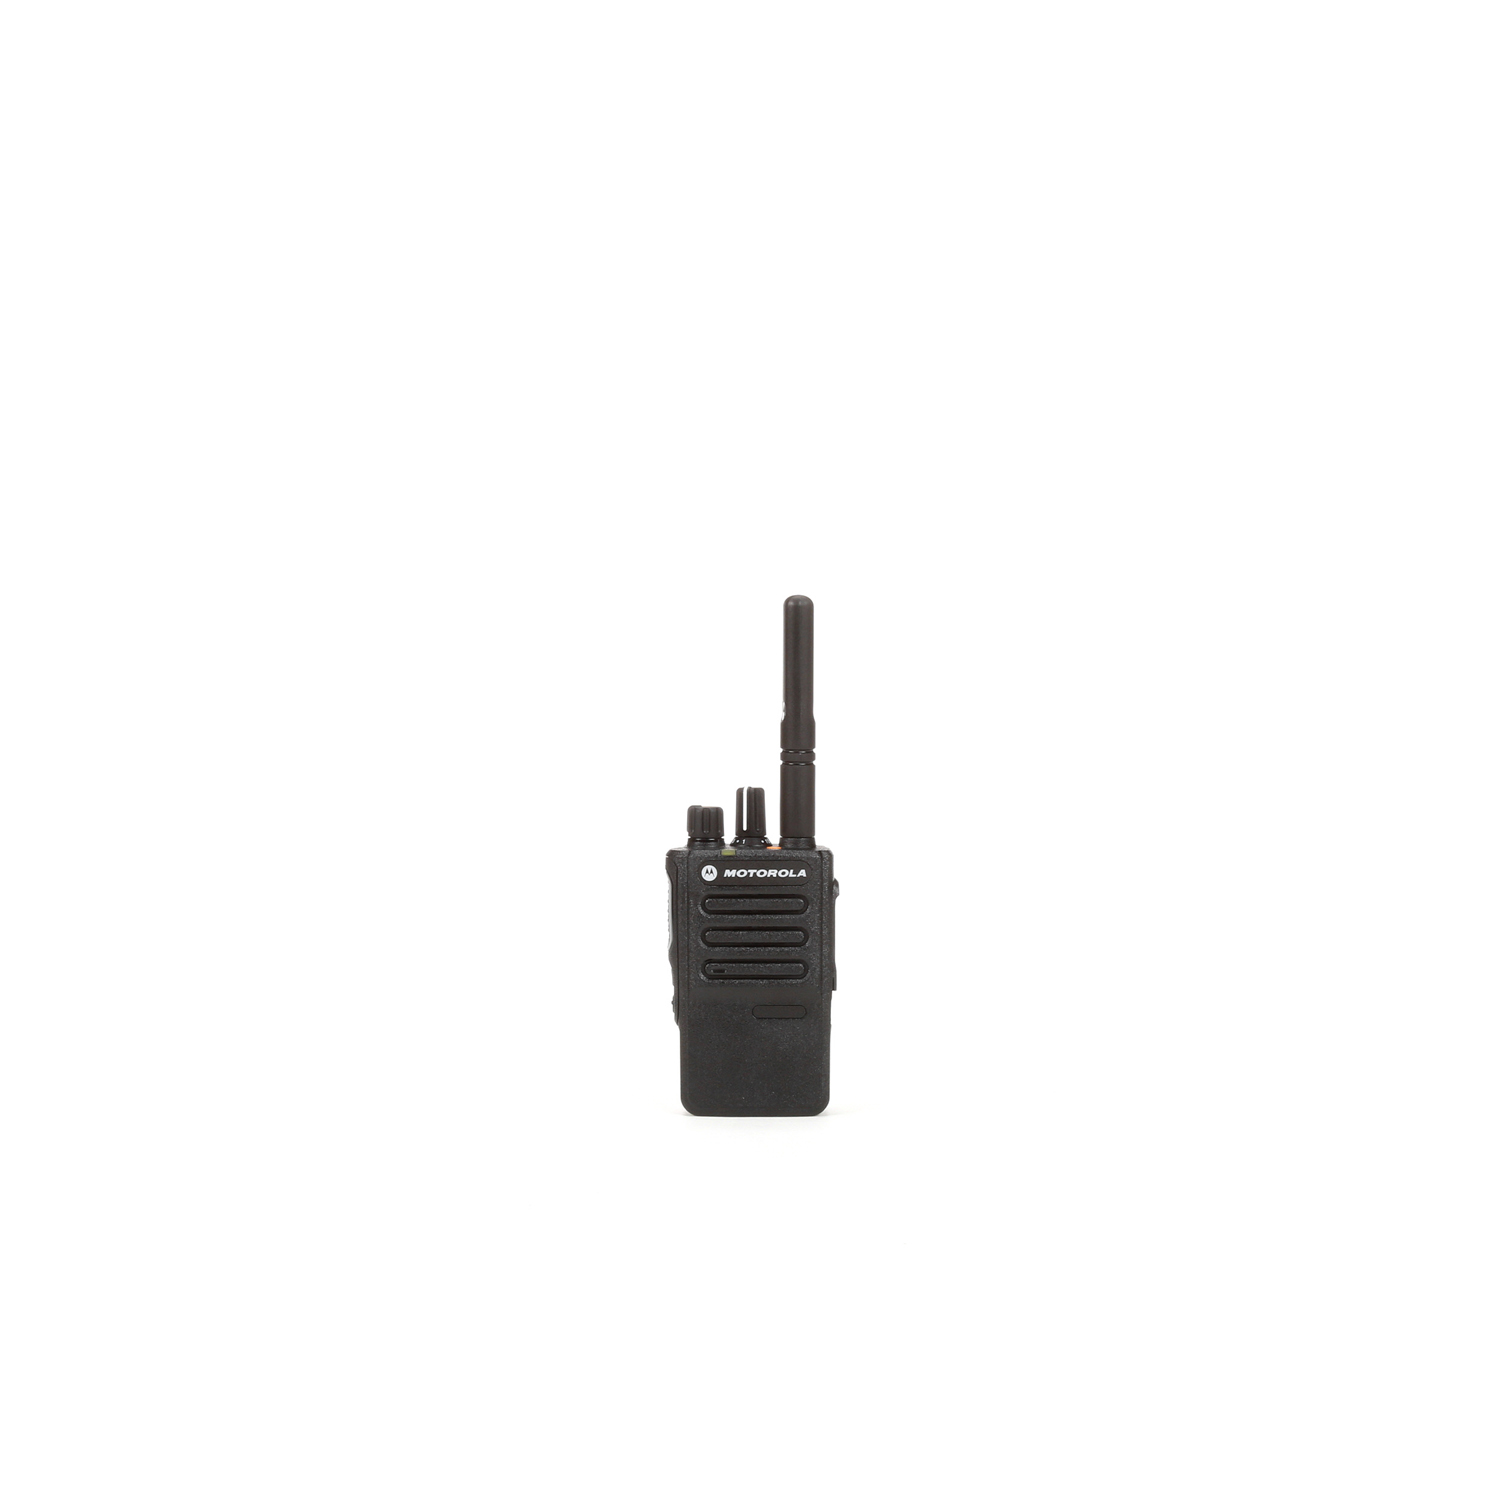 MOTOTRBO™ DP3000e Series Compact Portable Two-Way Radio